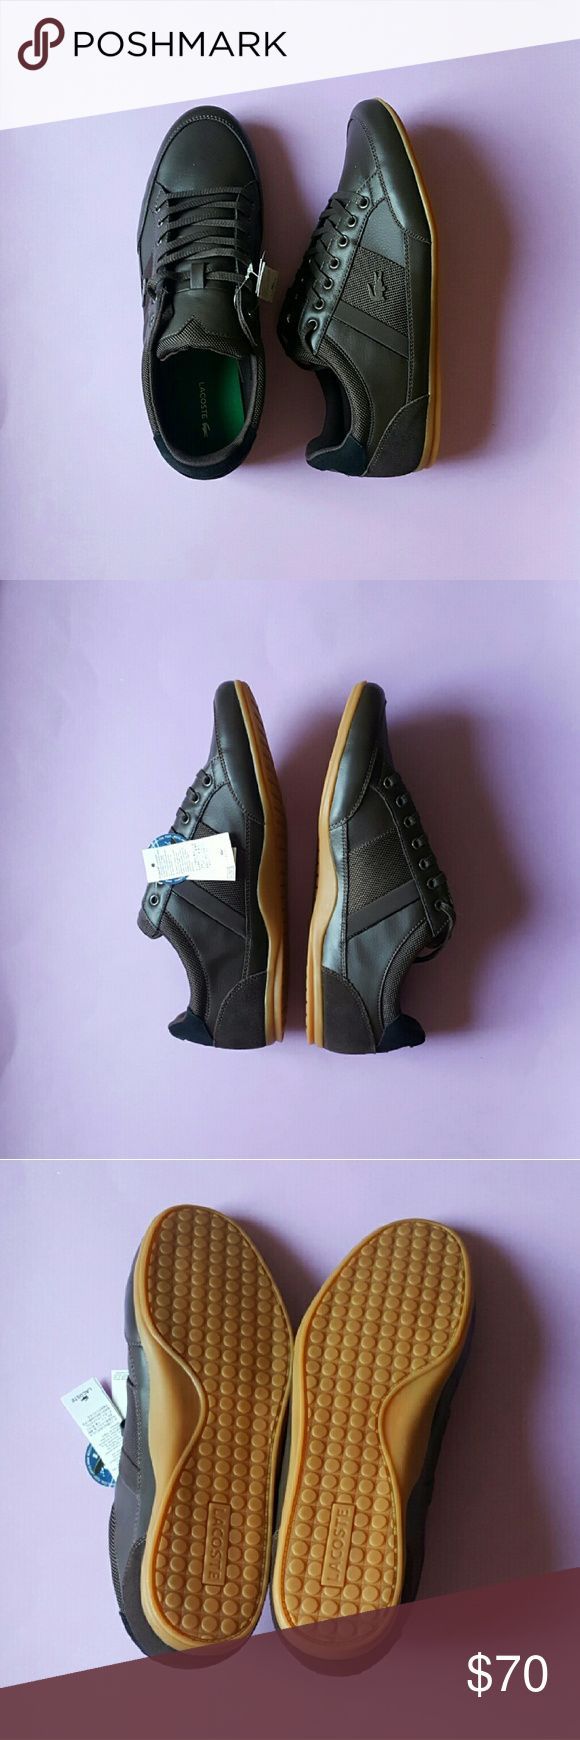 Lacoste Sport Ortholite Chayman Sneakers NO-TRADES  Cross posted   New with tags, but no box.  These are in brown suede and leather with black suede on the back.   Originally  $150, but now on sale for $80  Please, no trades requests or lowball offers. Lacoste Shoes Sneakers